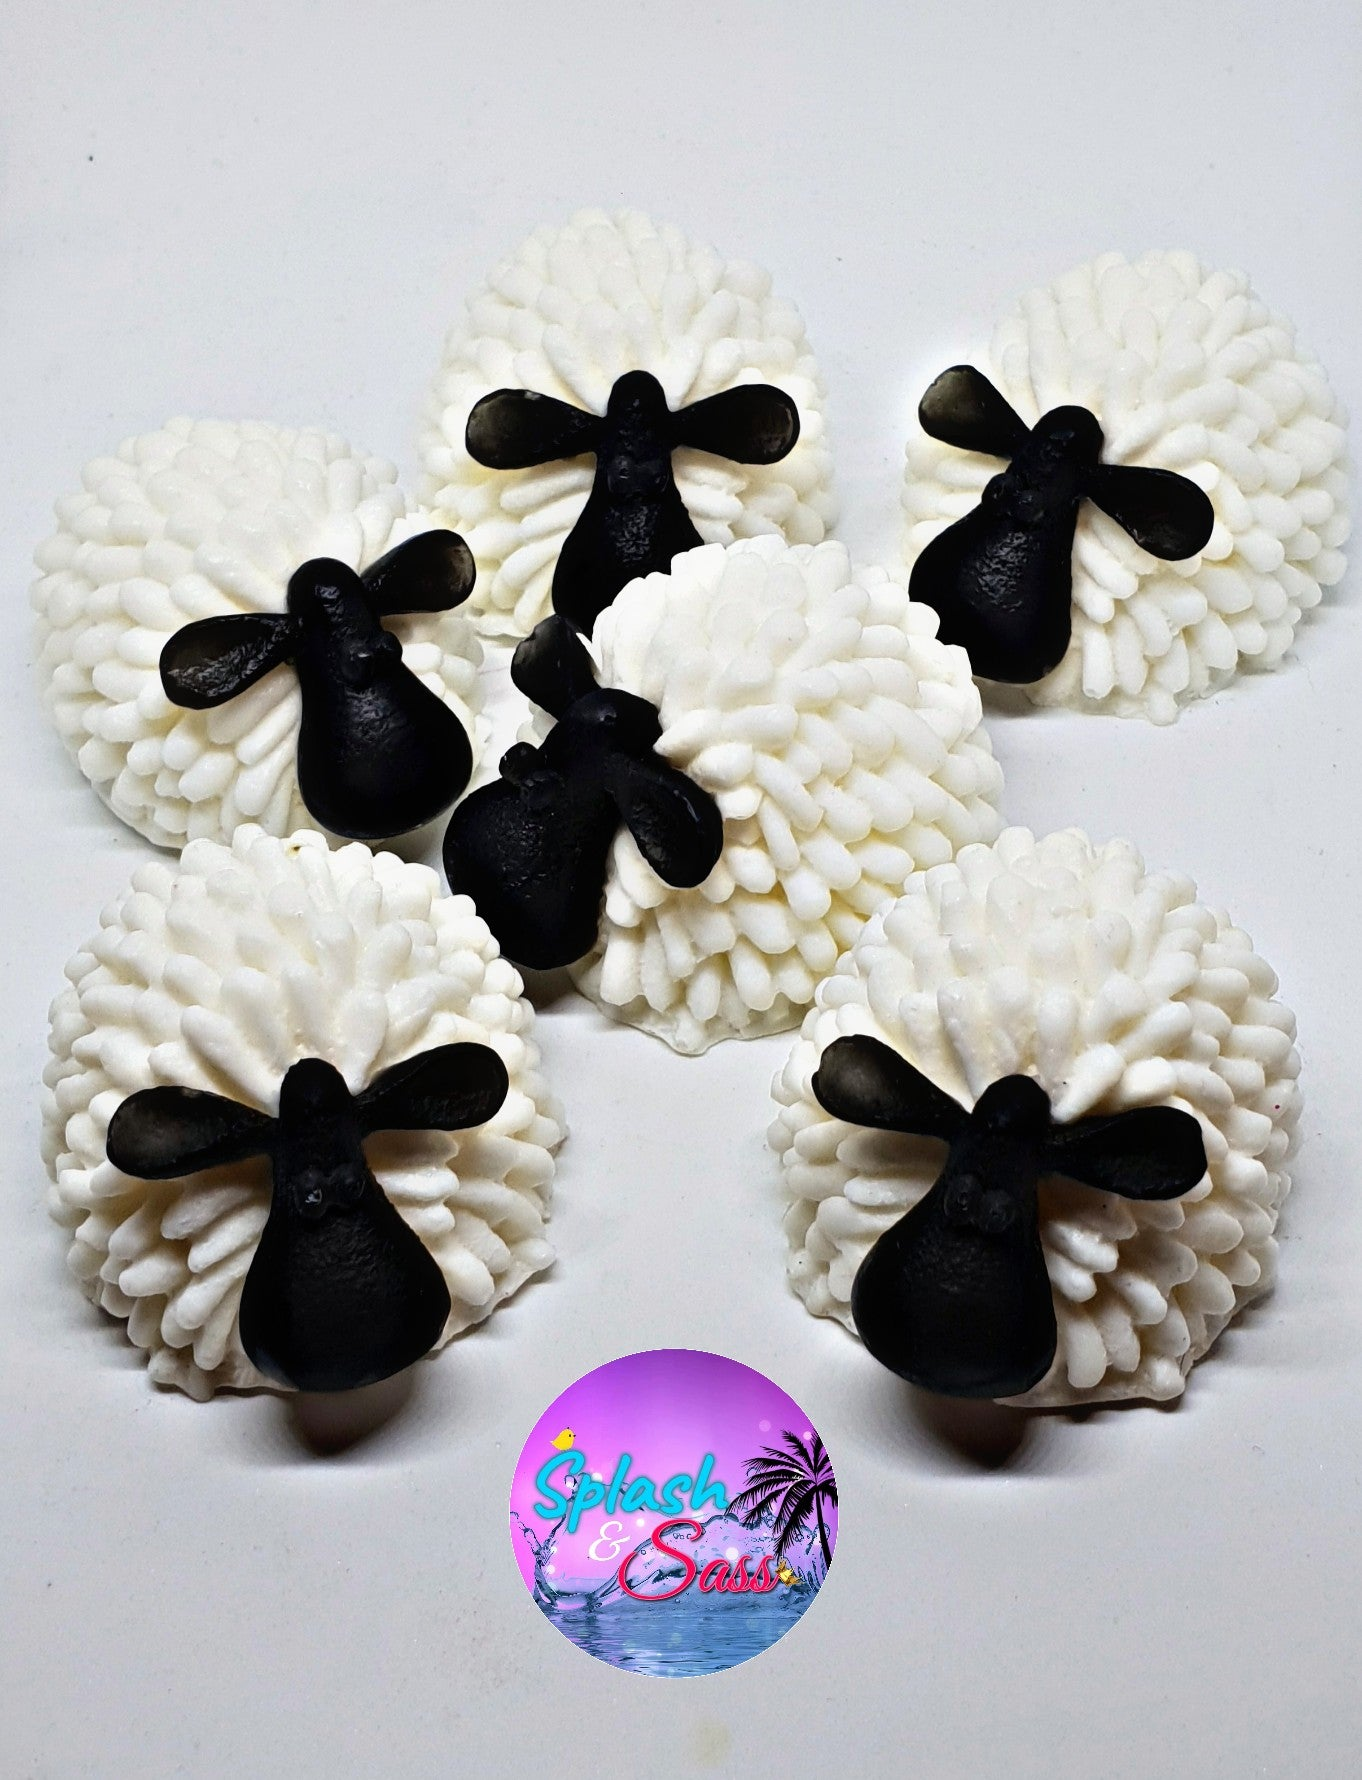 Sheep soaps - Splash-&-Sass